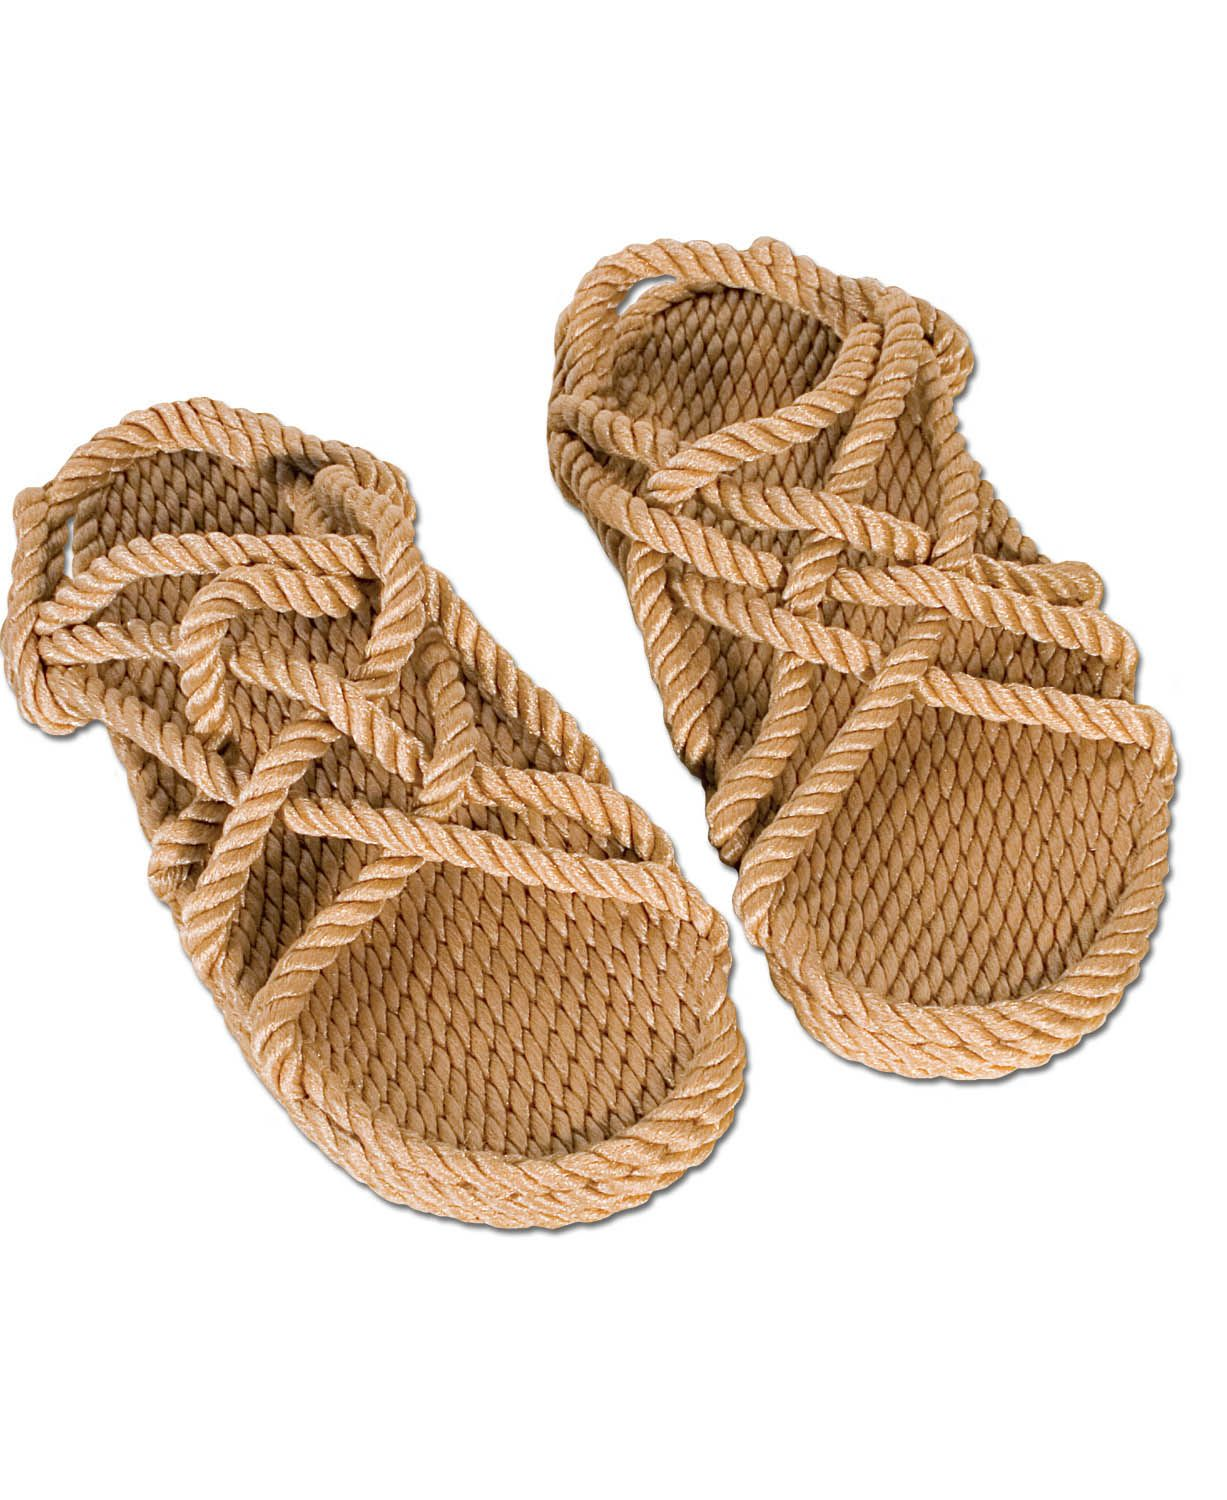 Rope Sandals Can Be Worn W Socks Rope Sandals Diy Sandals Most Comfortable Sandals